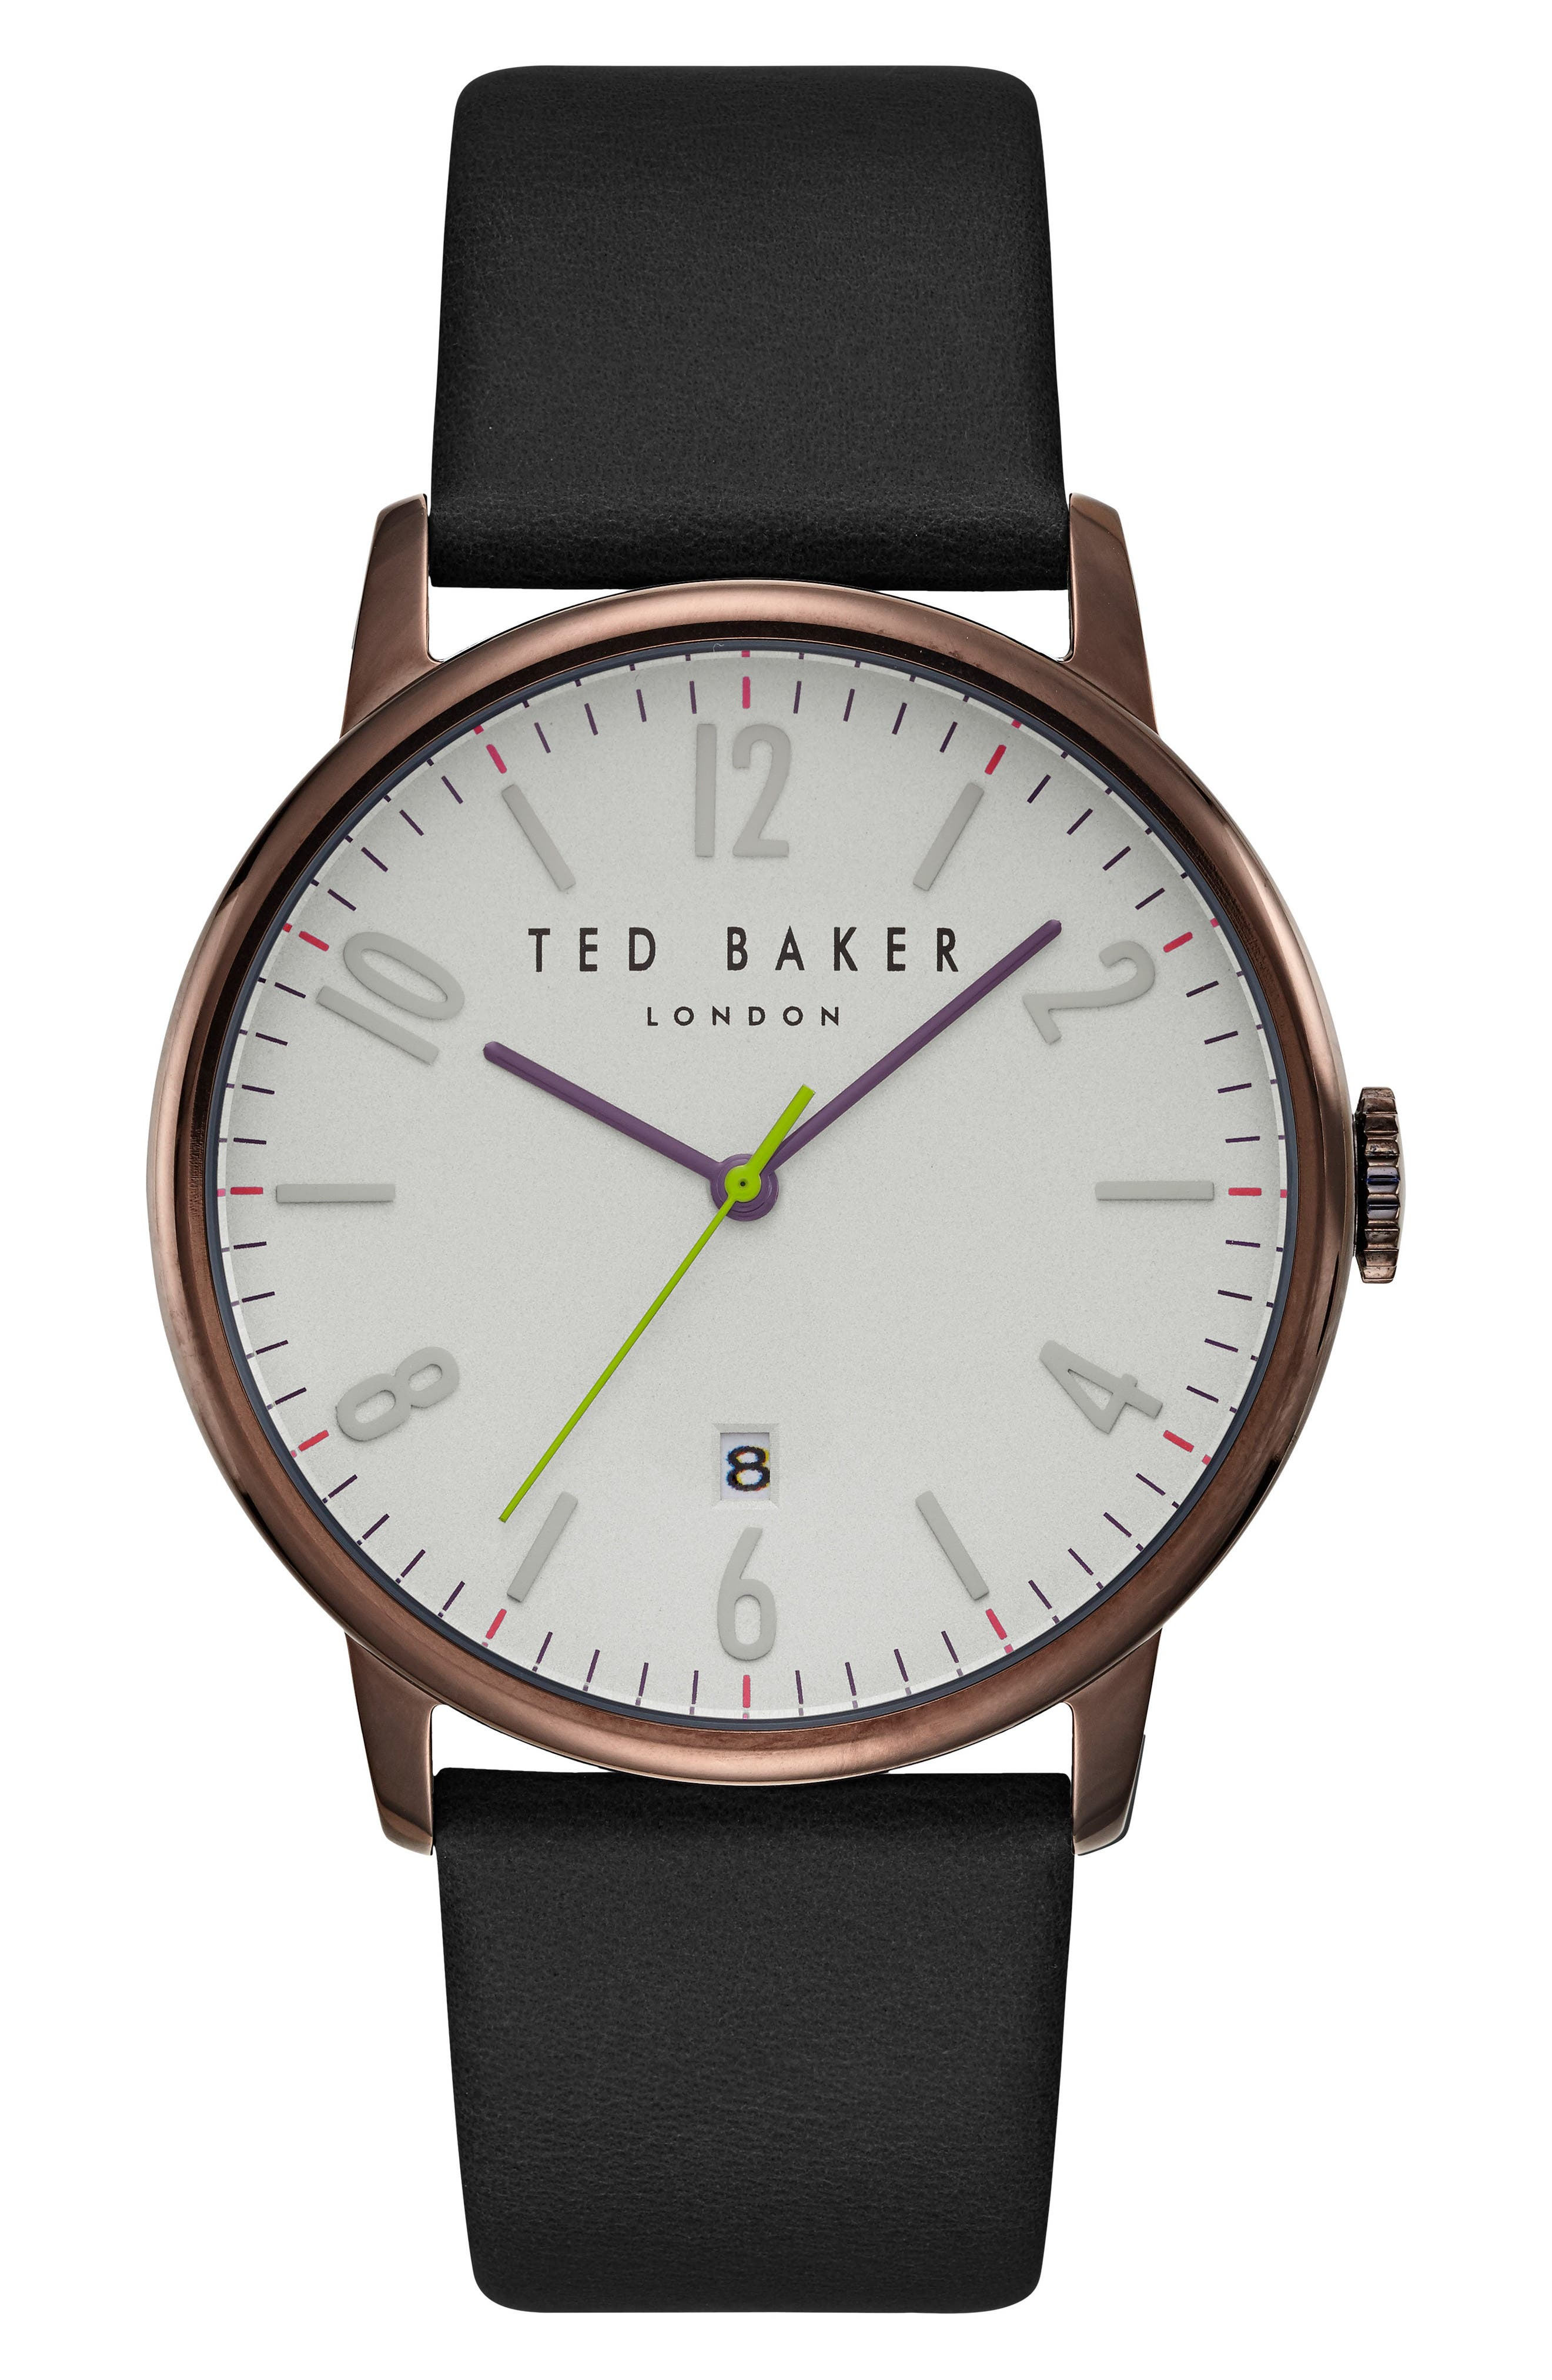 Main Image - Ted Baker London Thomas Leather Strap Watch, 41mm